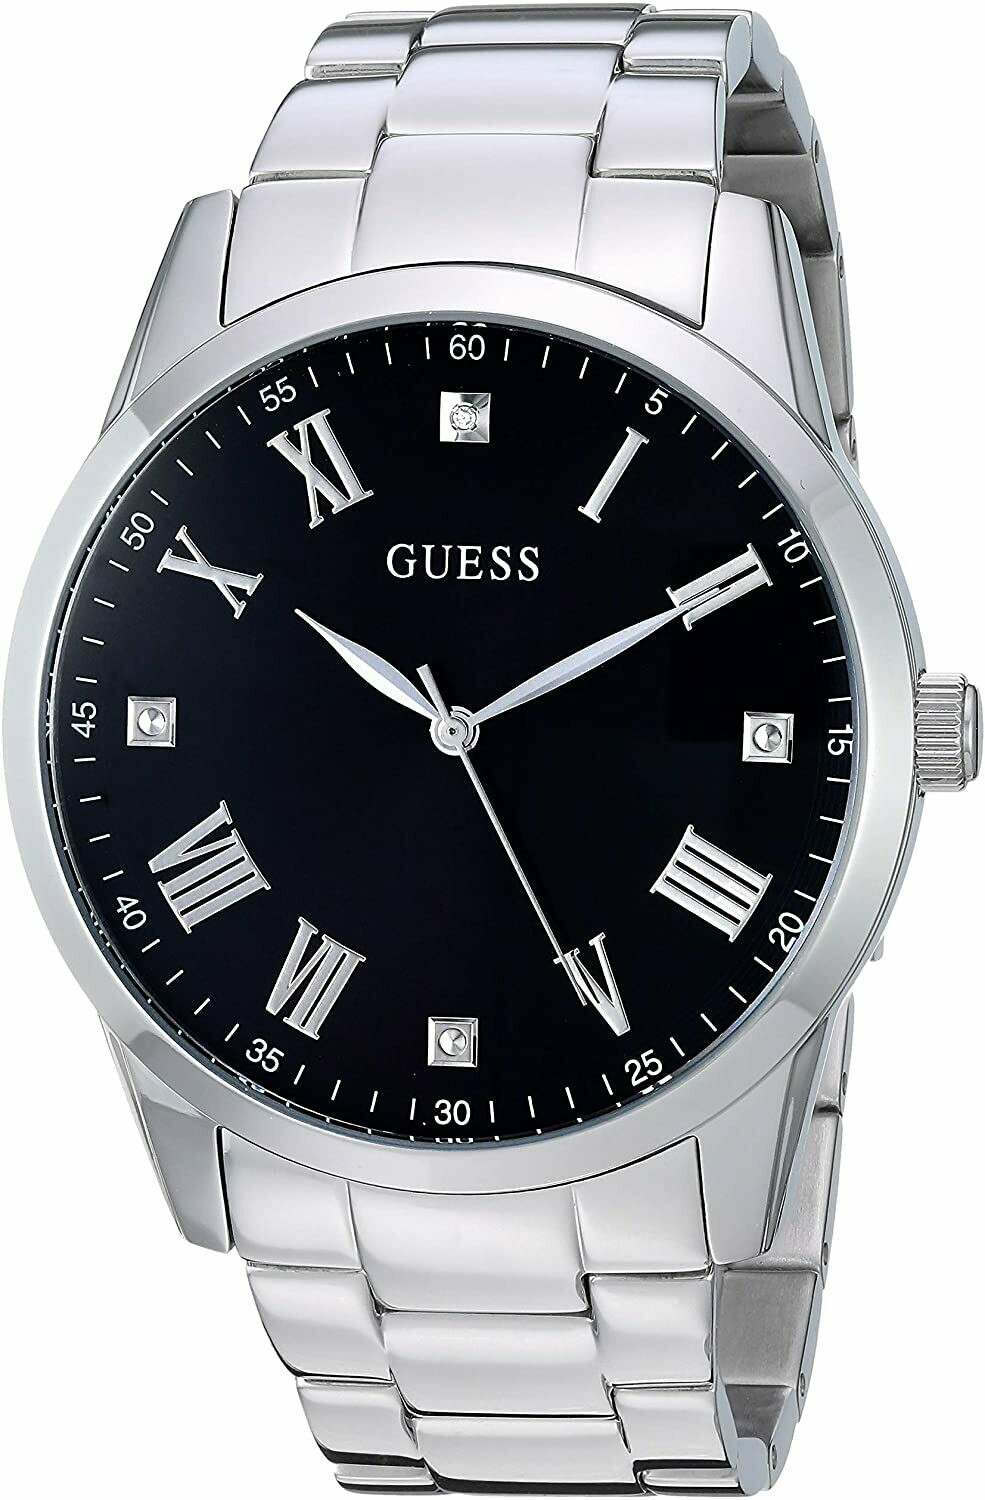 GTS S/C BLK DIAL GUESS WATCH